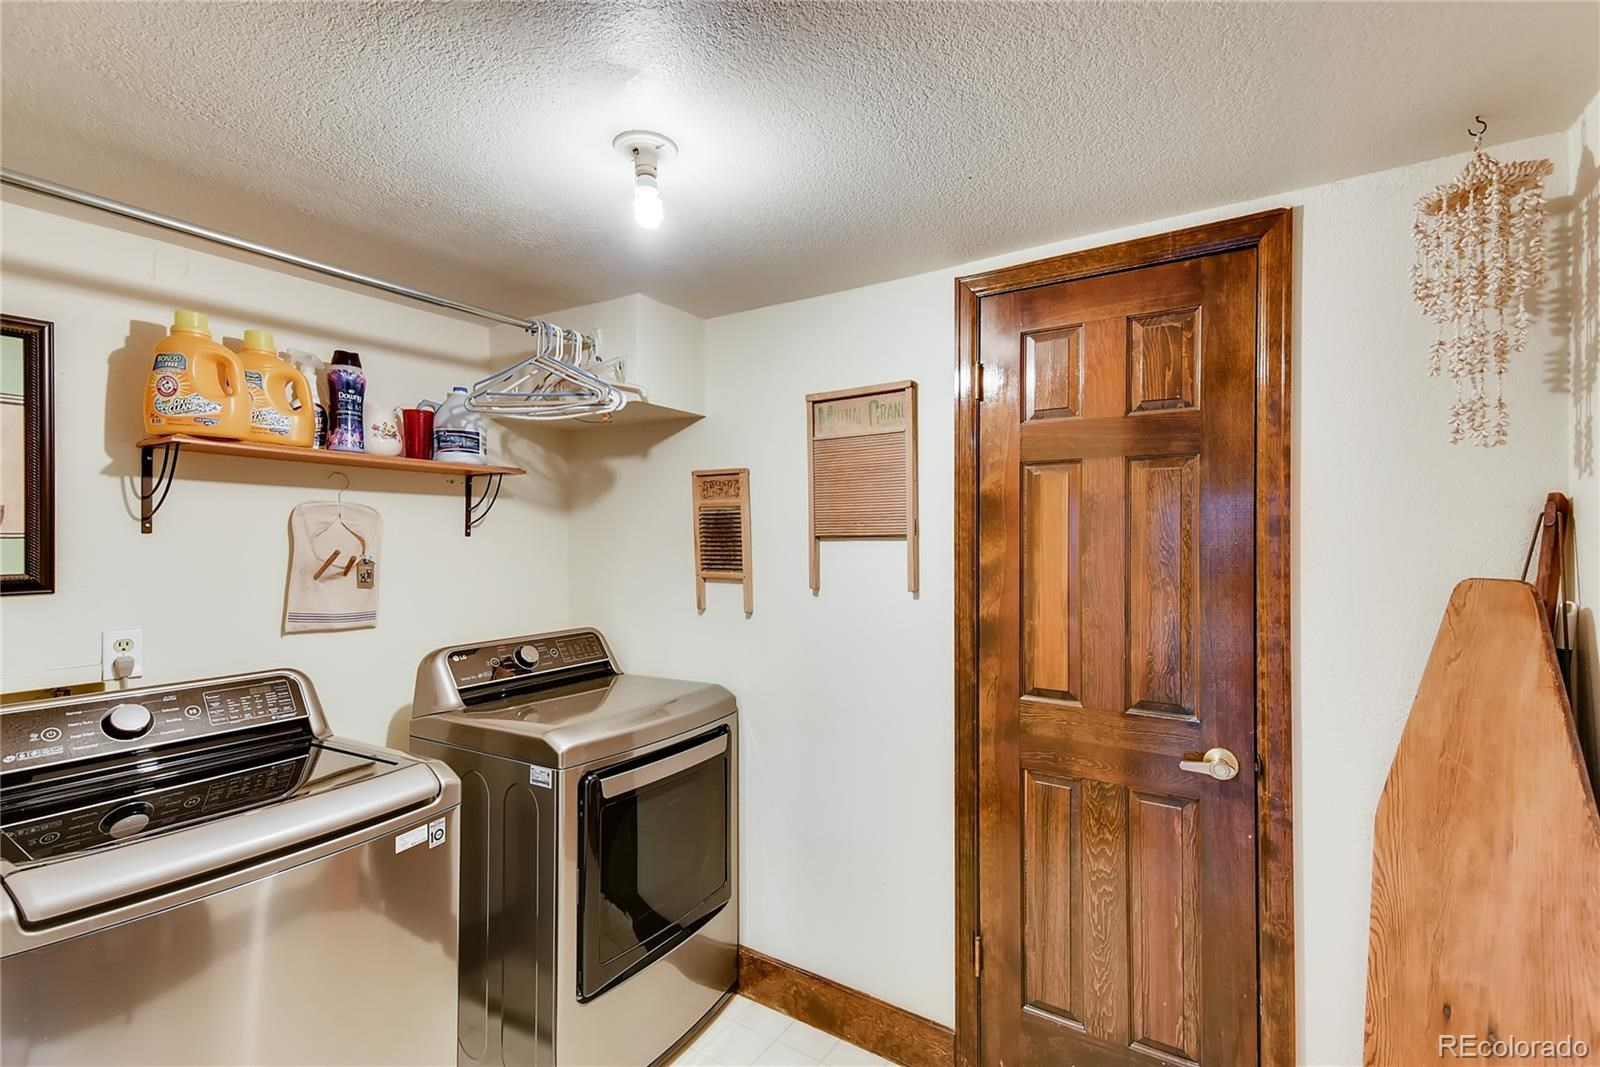 MLS# 6910180 - 21 - 2336 Ranch Drive, Westminster, CO 80234